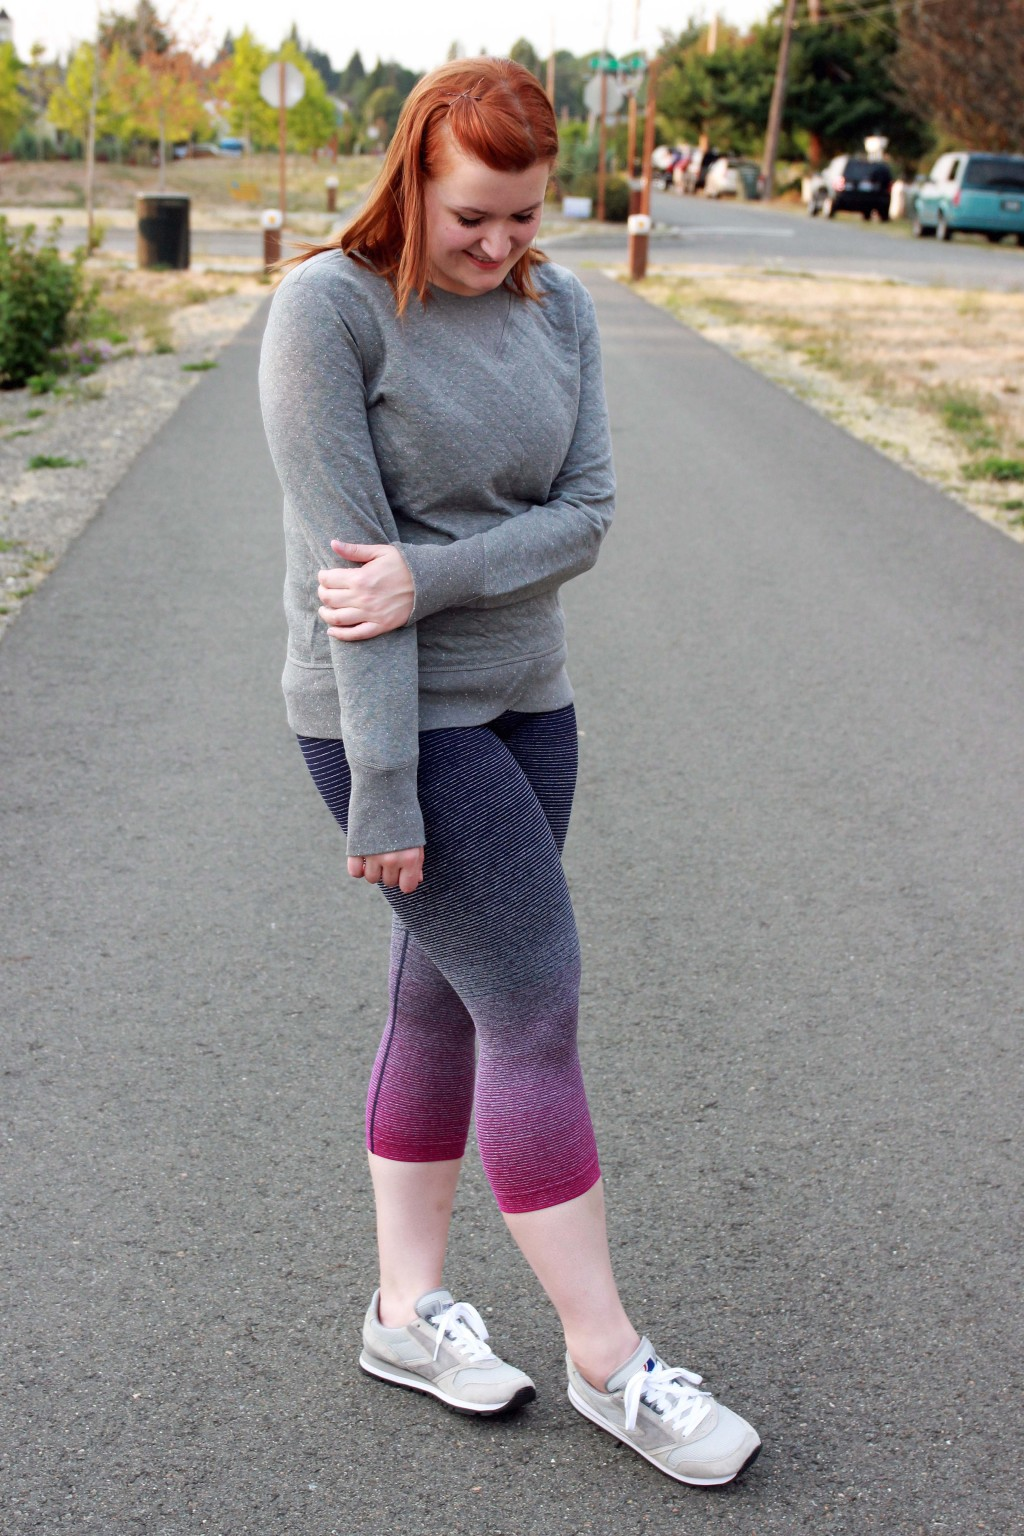 All Things Kate in Brooks Running gear